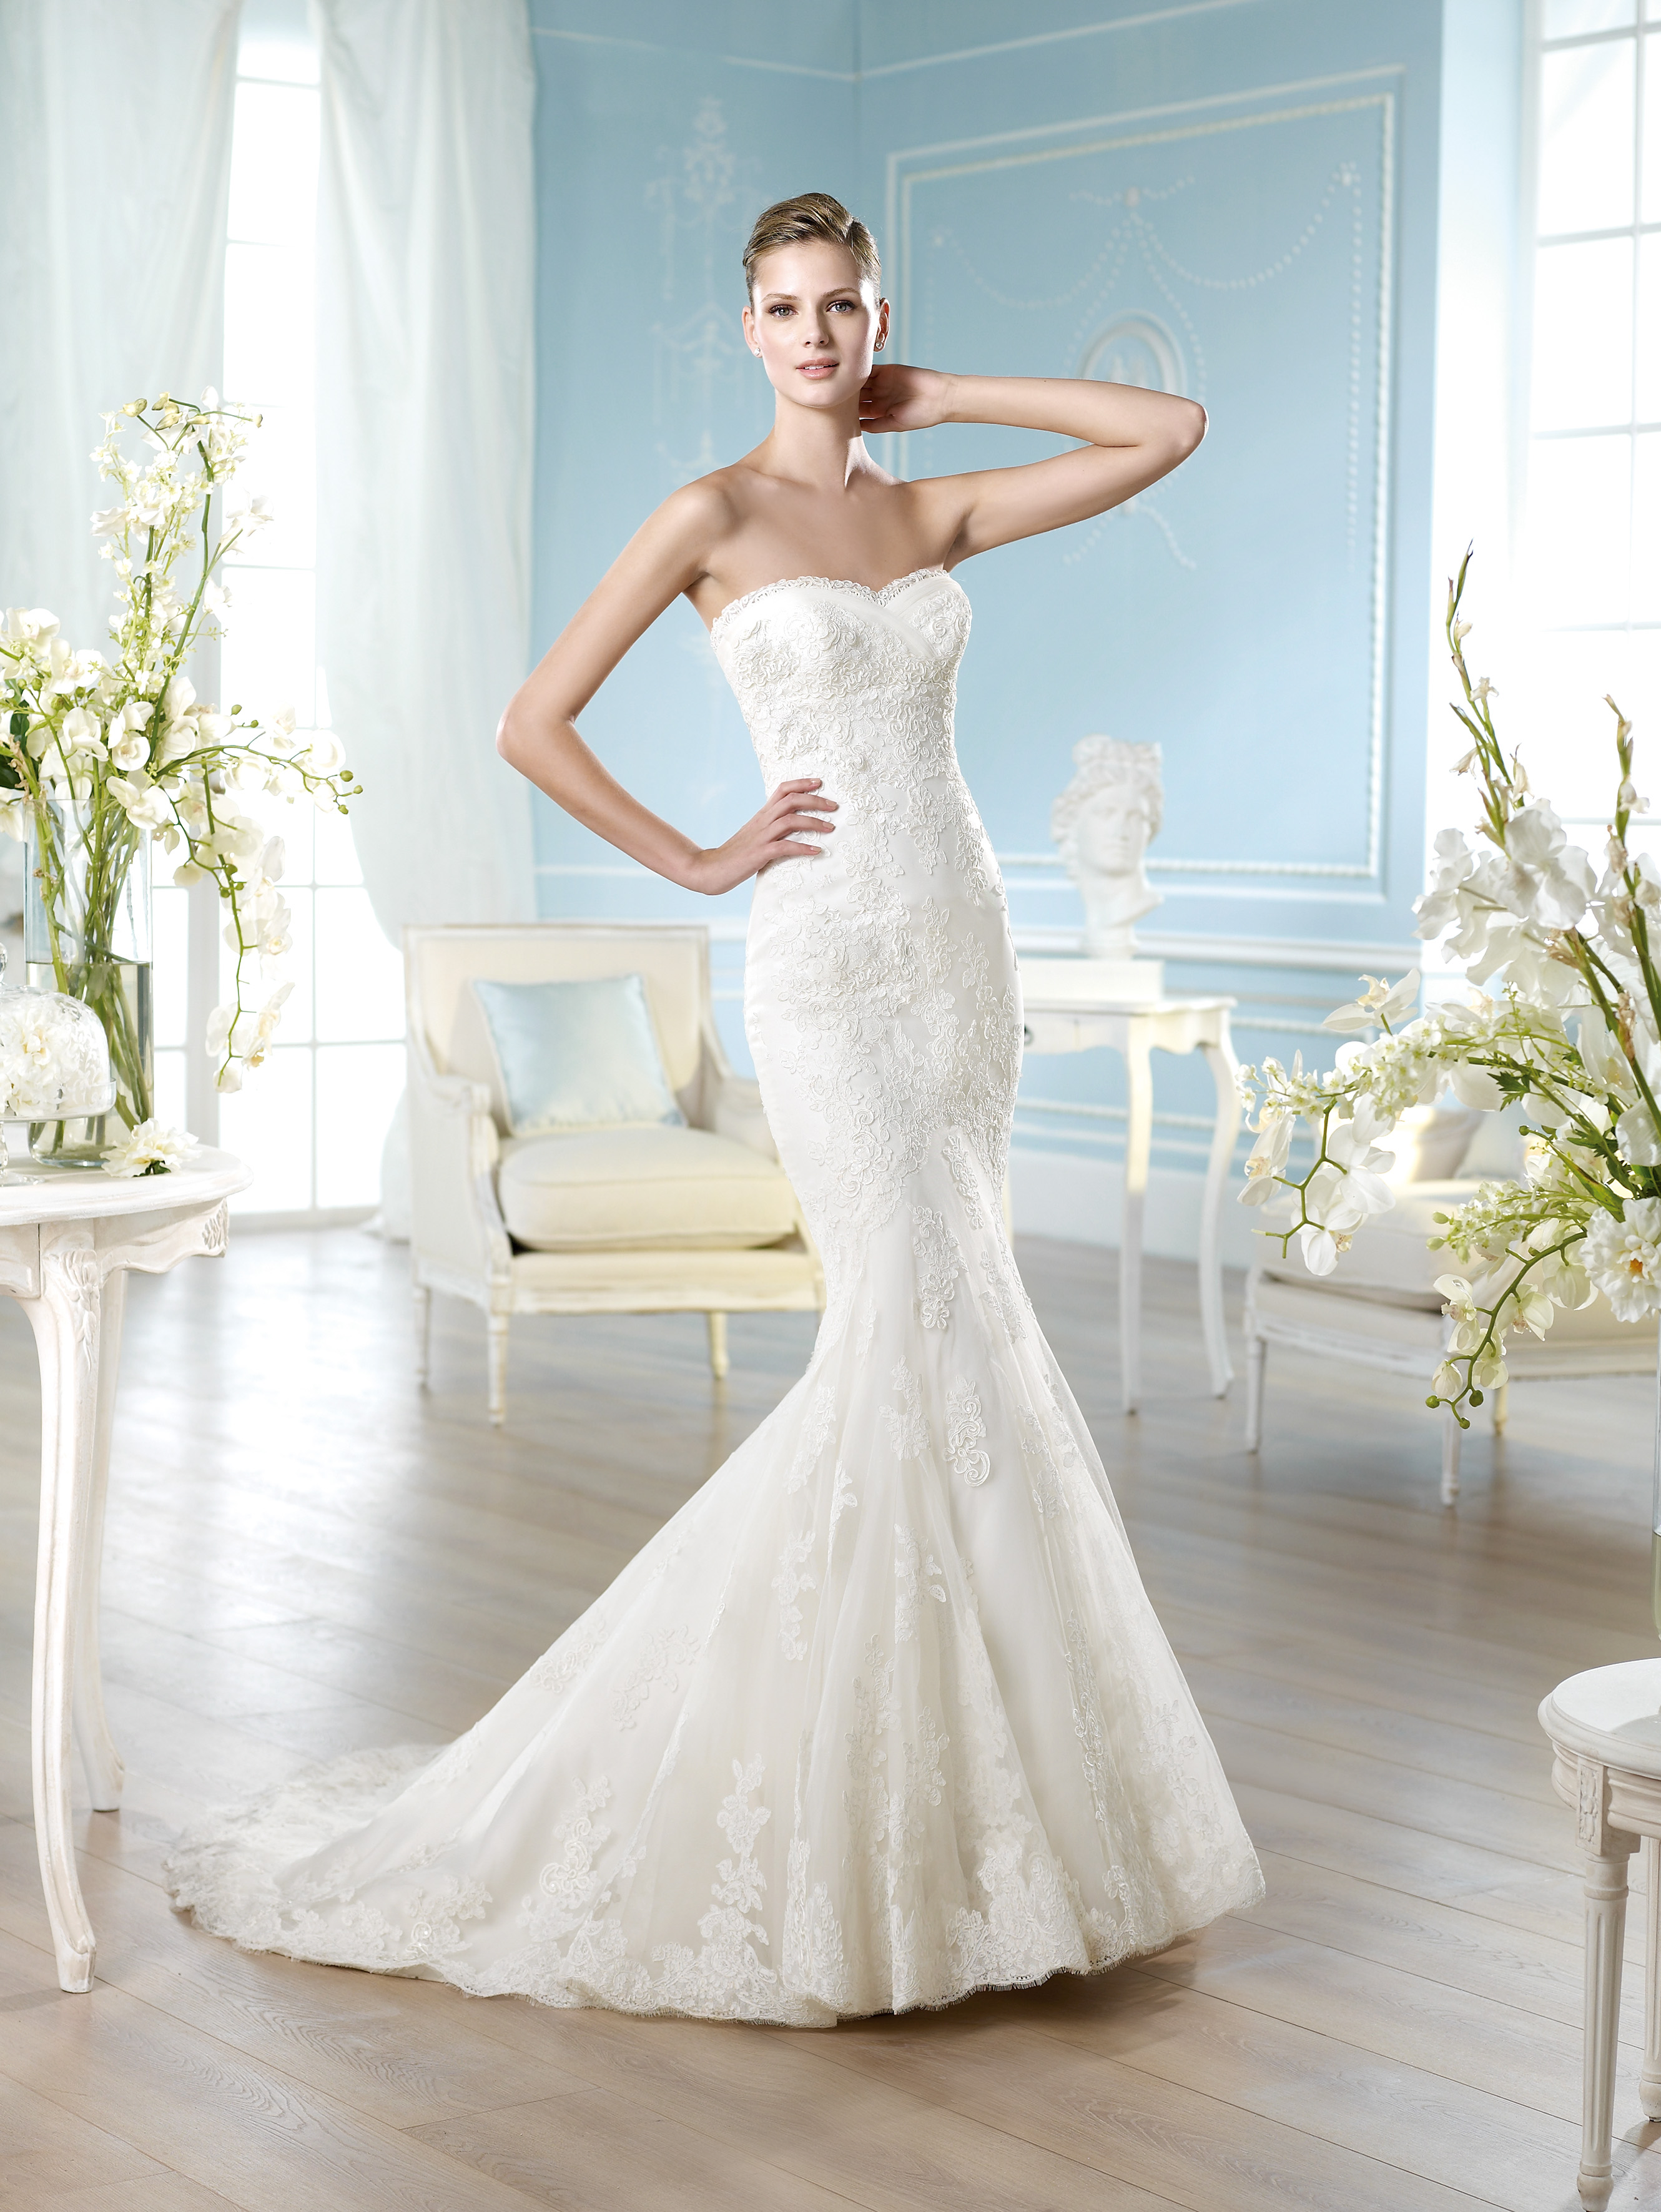 1 Day Wedding Dress Sale - 4th May - Butterfly Bridal Boutique